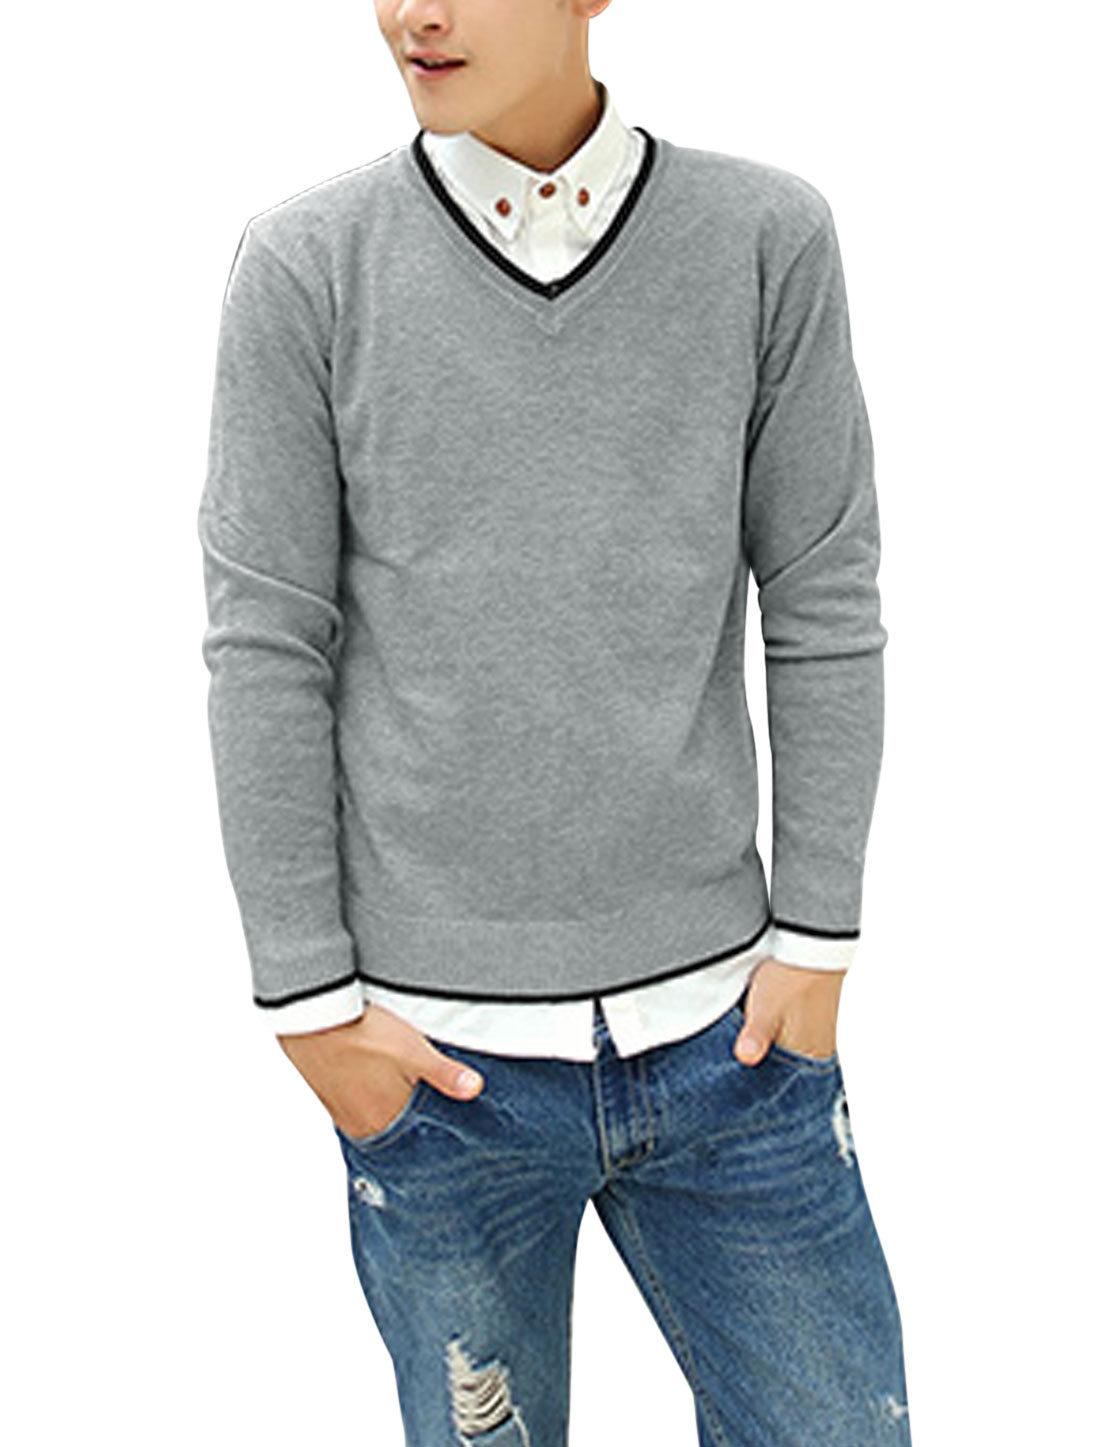 Men V Neck Long Sleeves Patched Detail Casual Slim Fit Sweater Light Gray M